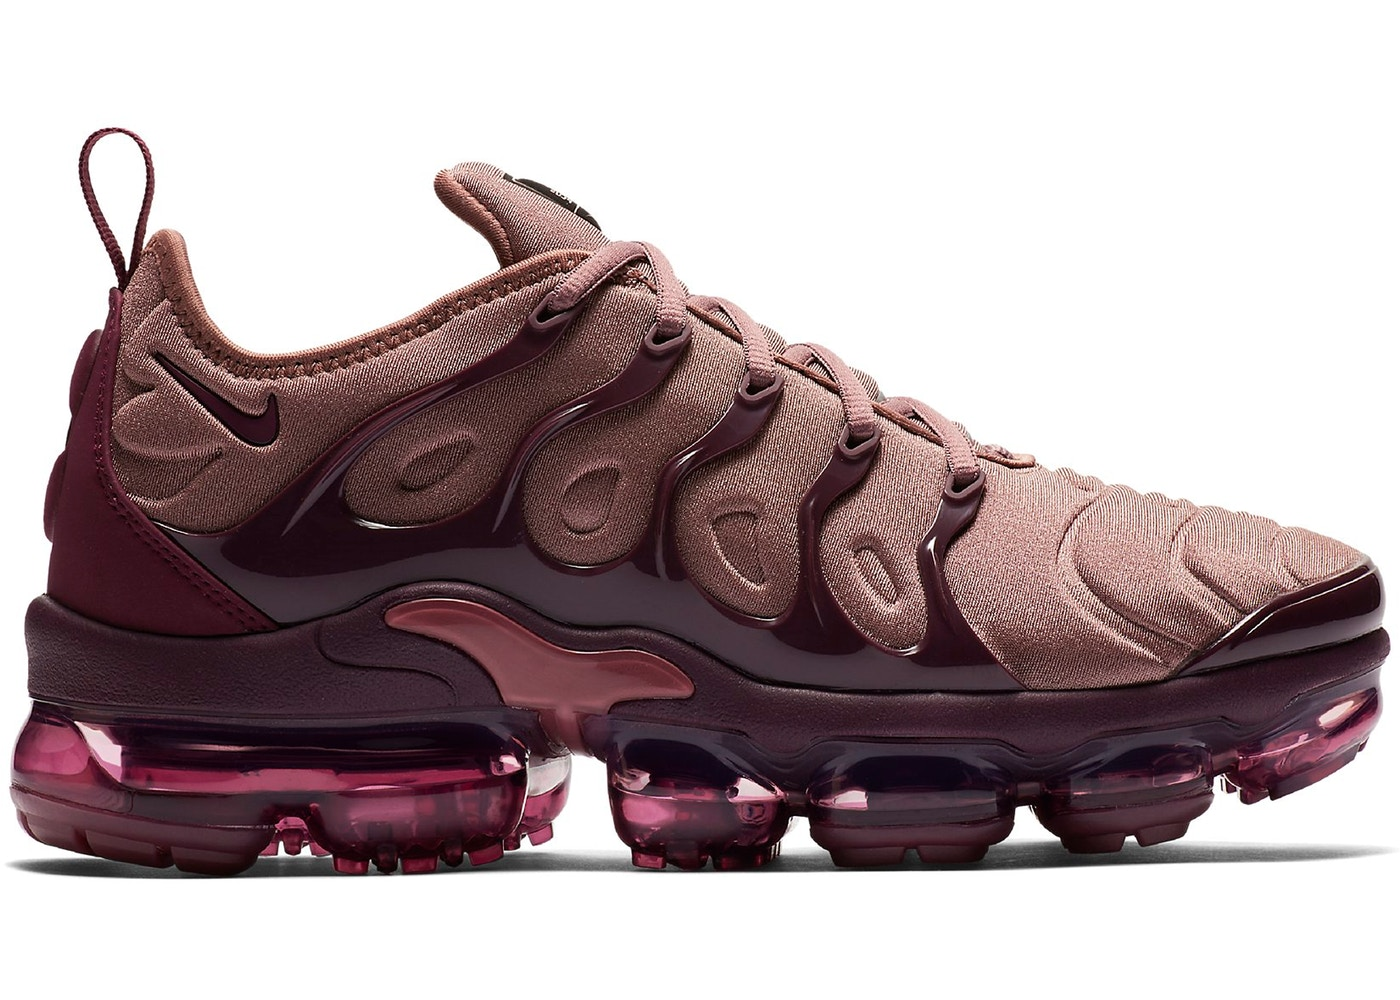 a7aa266463 Air VaporMax Plus Bordeaux (W) - AO4550-200